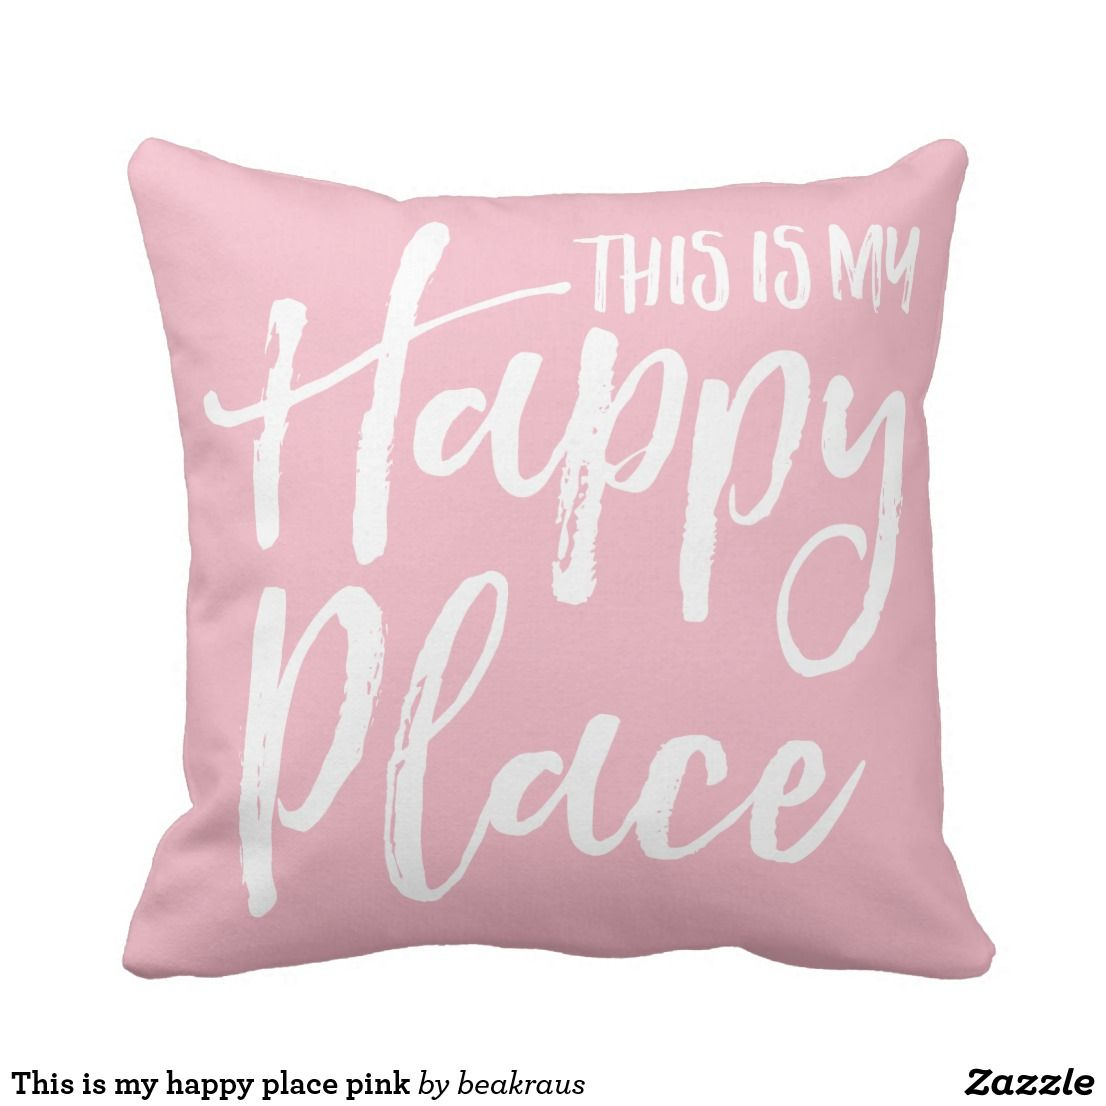 This is my happy place pink throw pillow